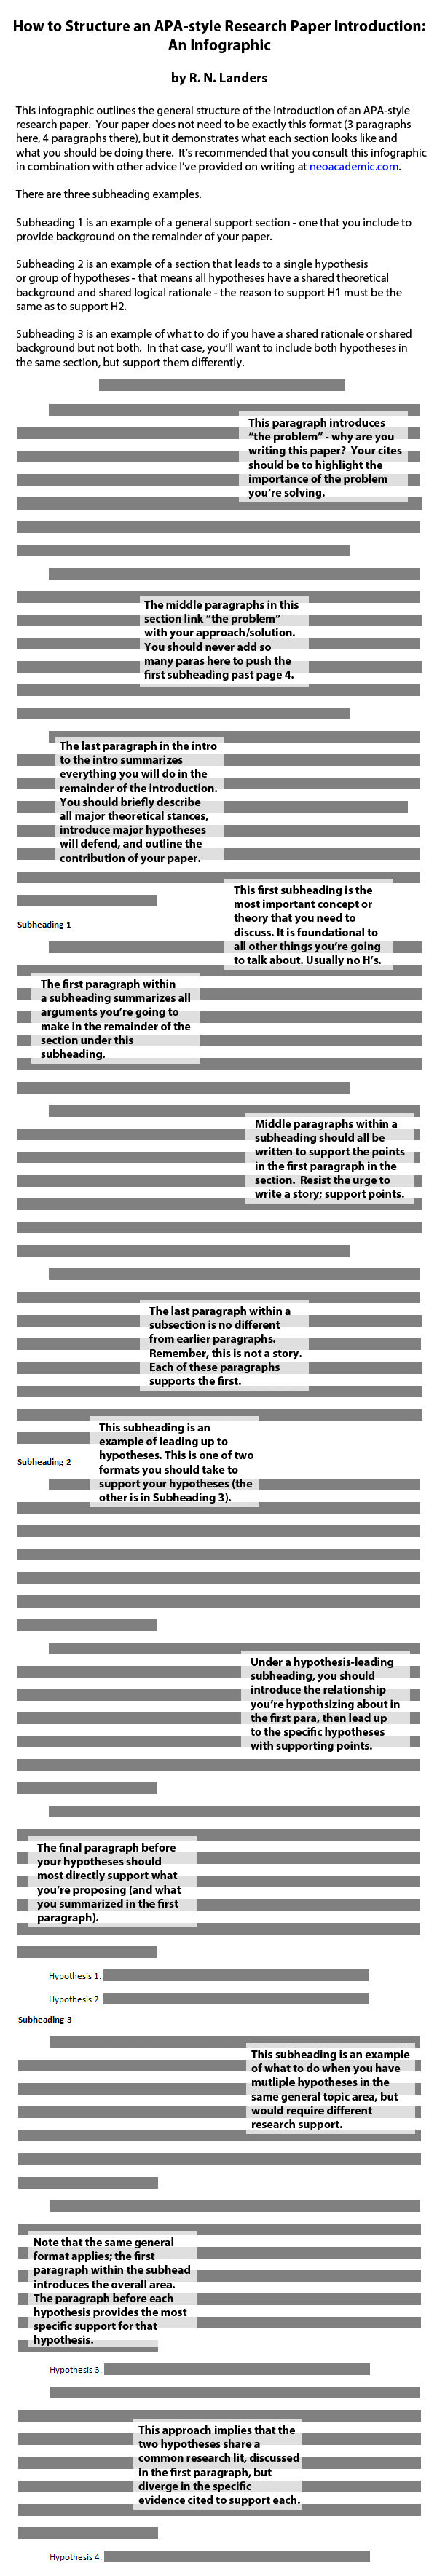 002 Intro Infographic2 Research Paper How To Write An Introduction For Fearsome A Apa Full